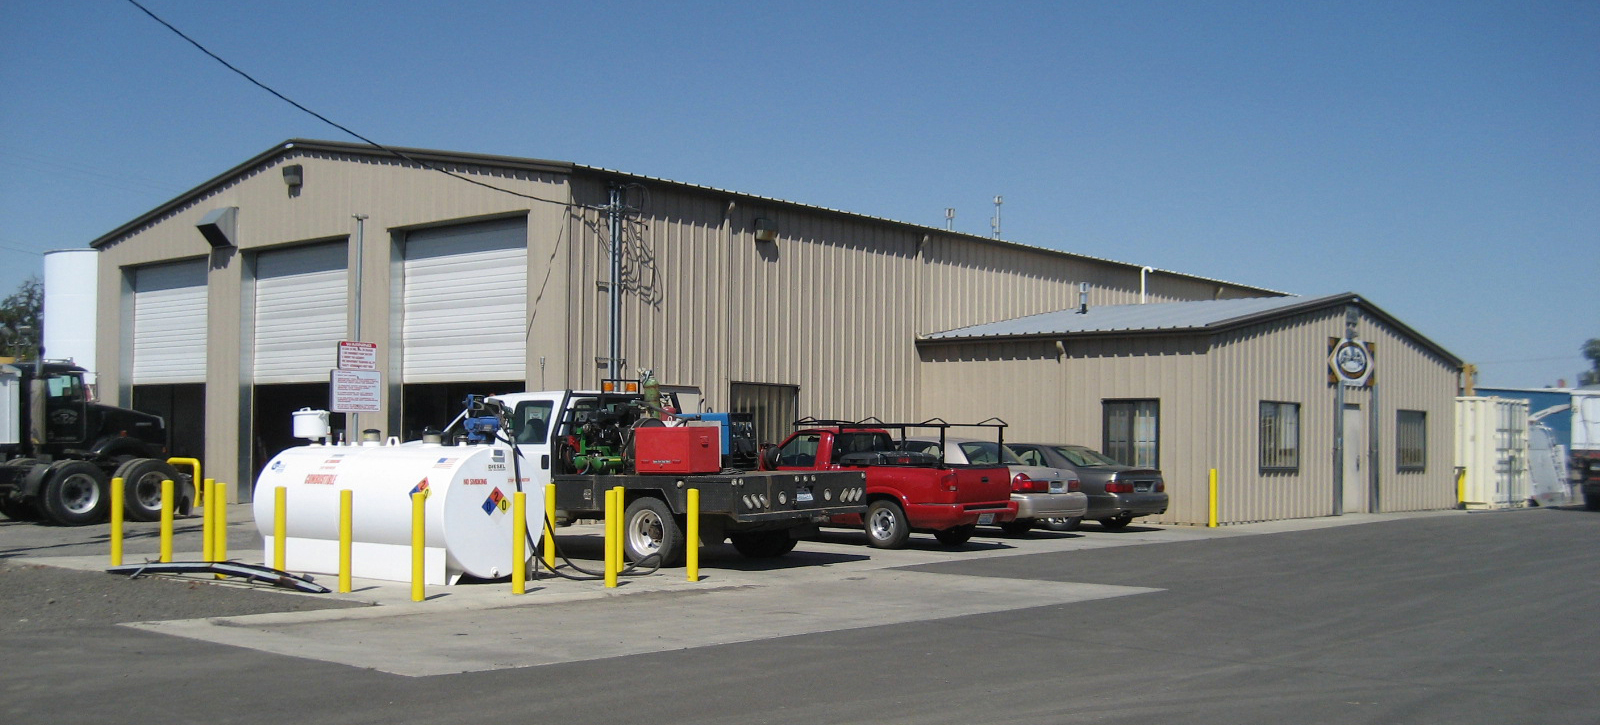 Mountain Hi Truck and Equipment Walla Walla Washington